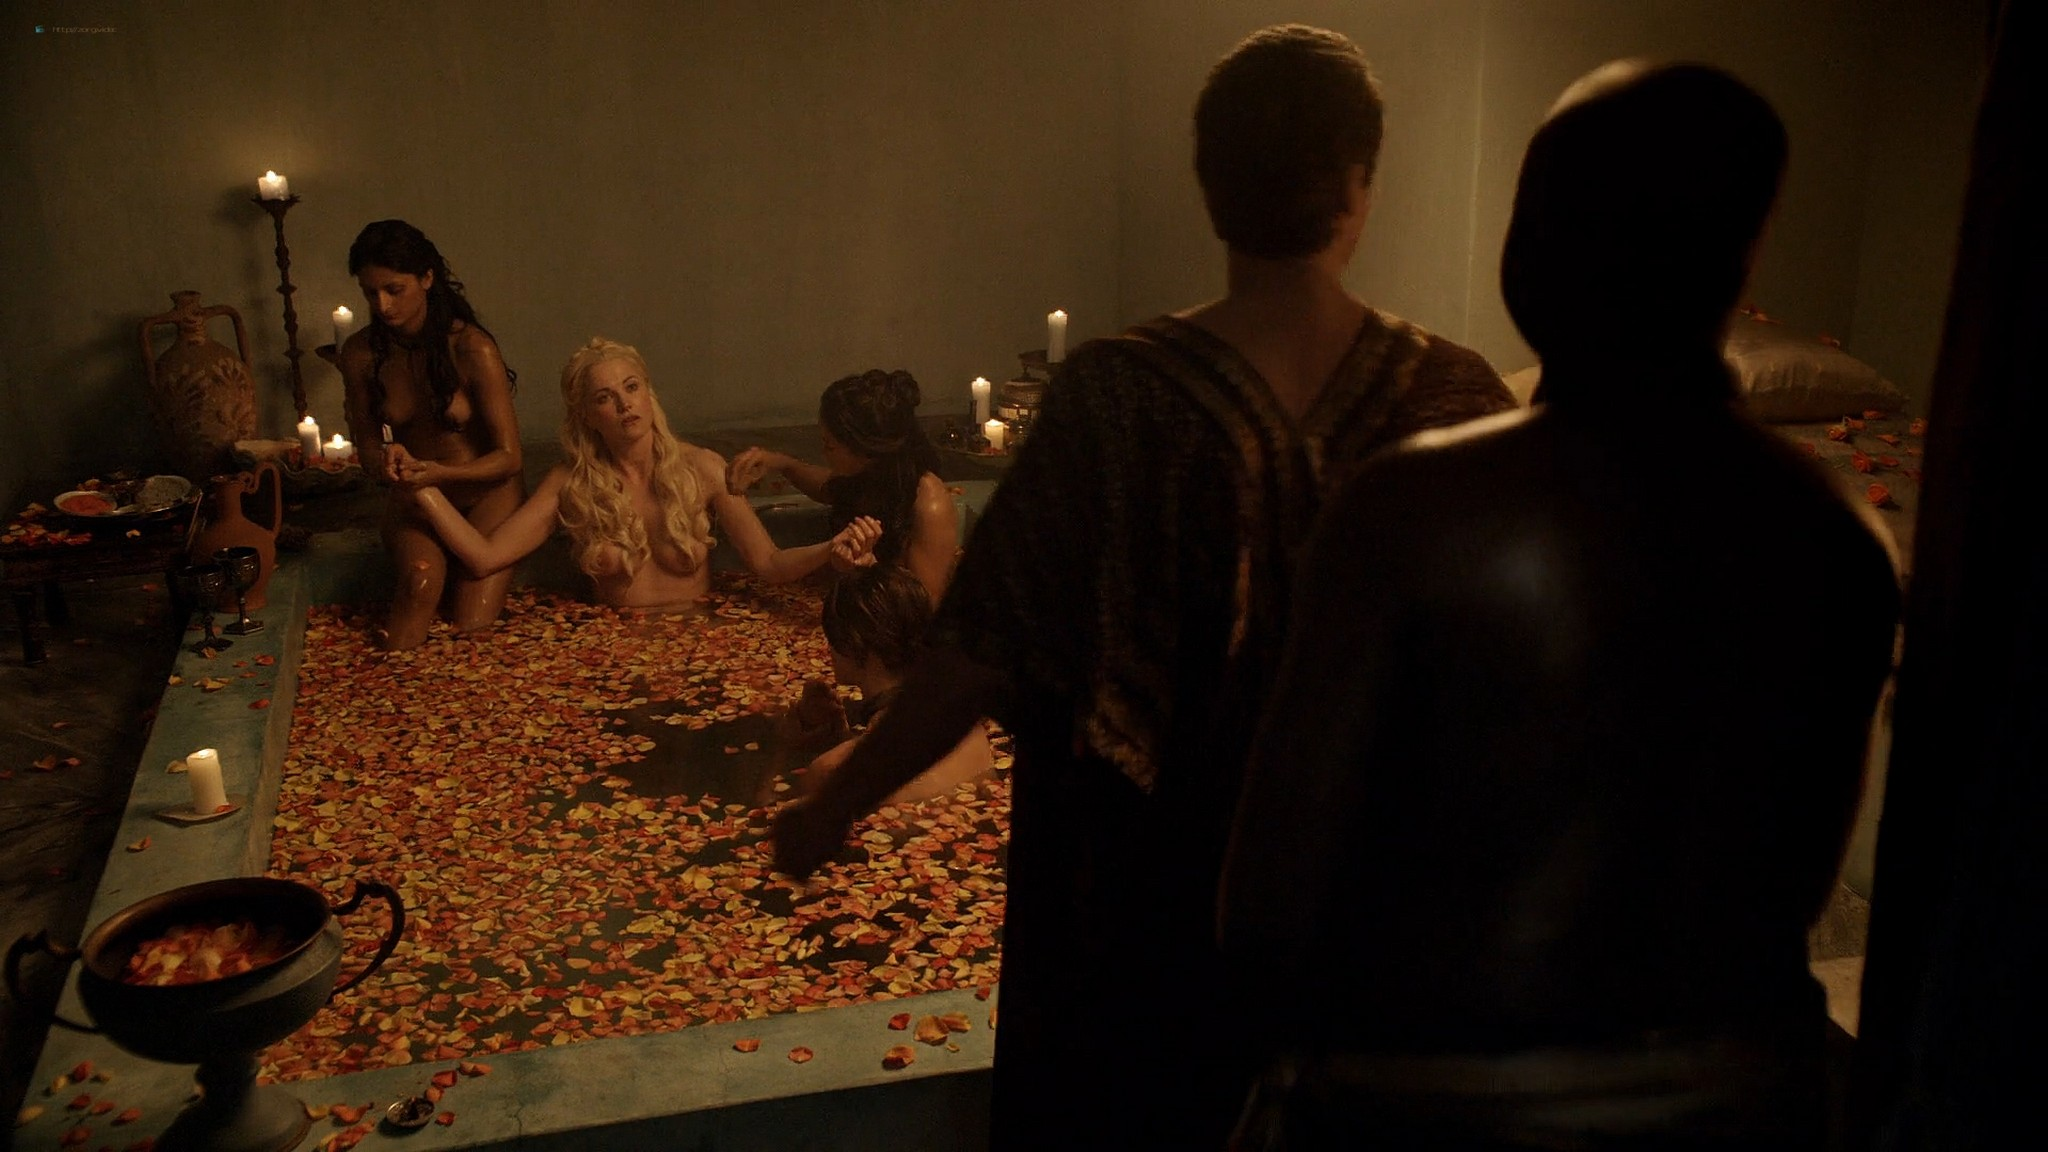 Lucy Lawless nude Lesley-Ann Brandt and other nude sex too - Spartacus (2010) Delicate Things s1e6 HD 1080p BluRay (17)